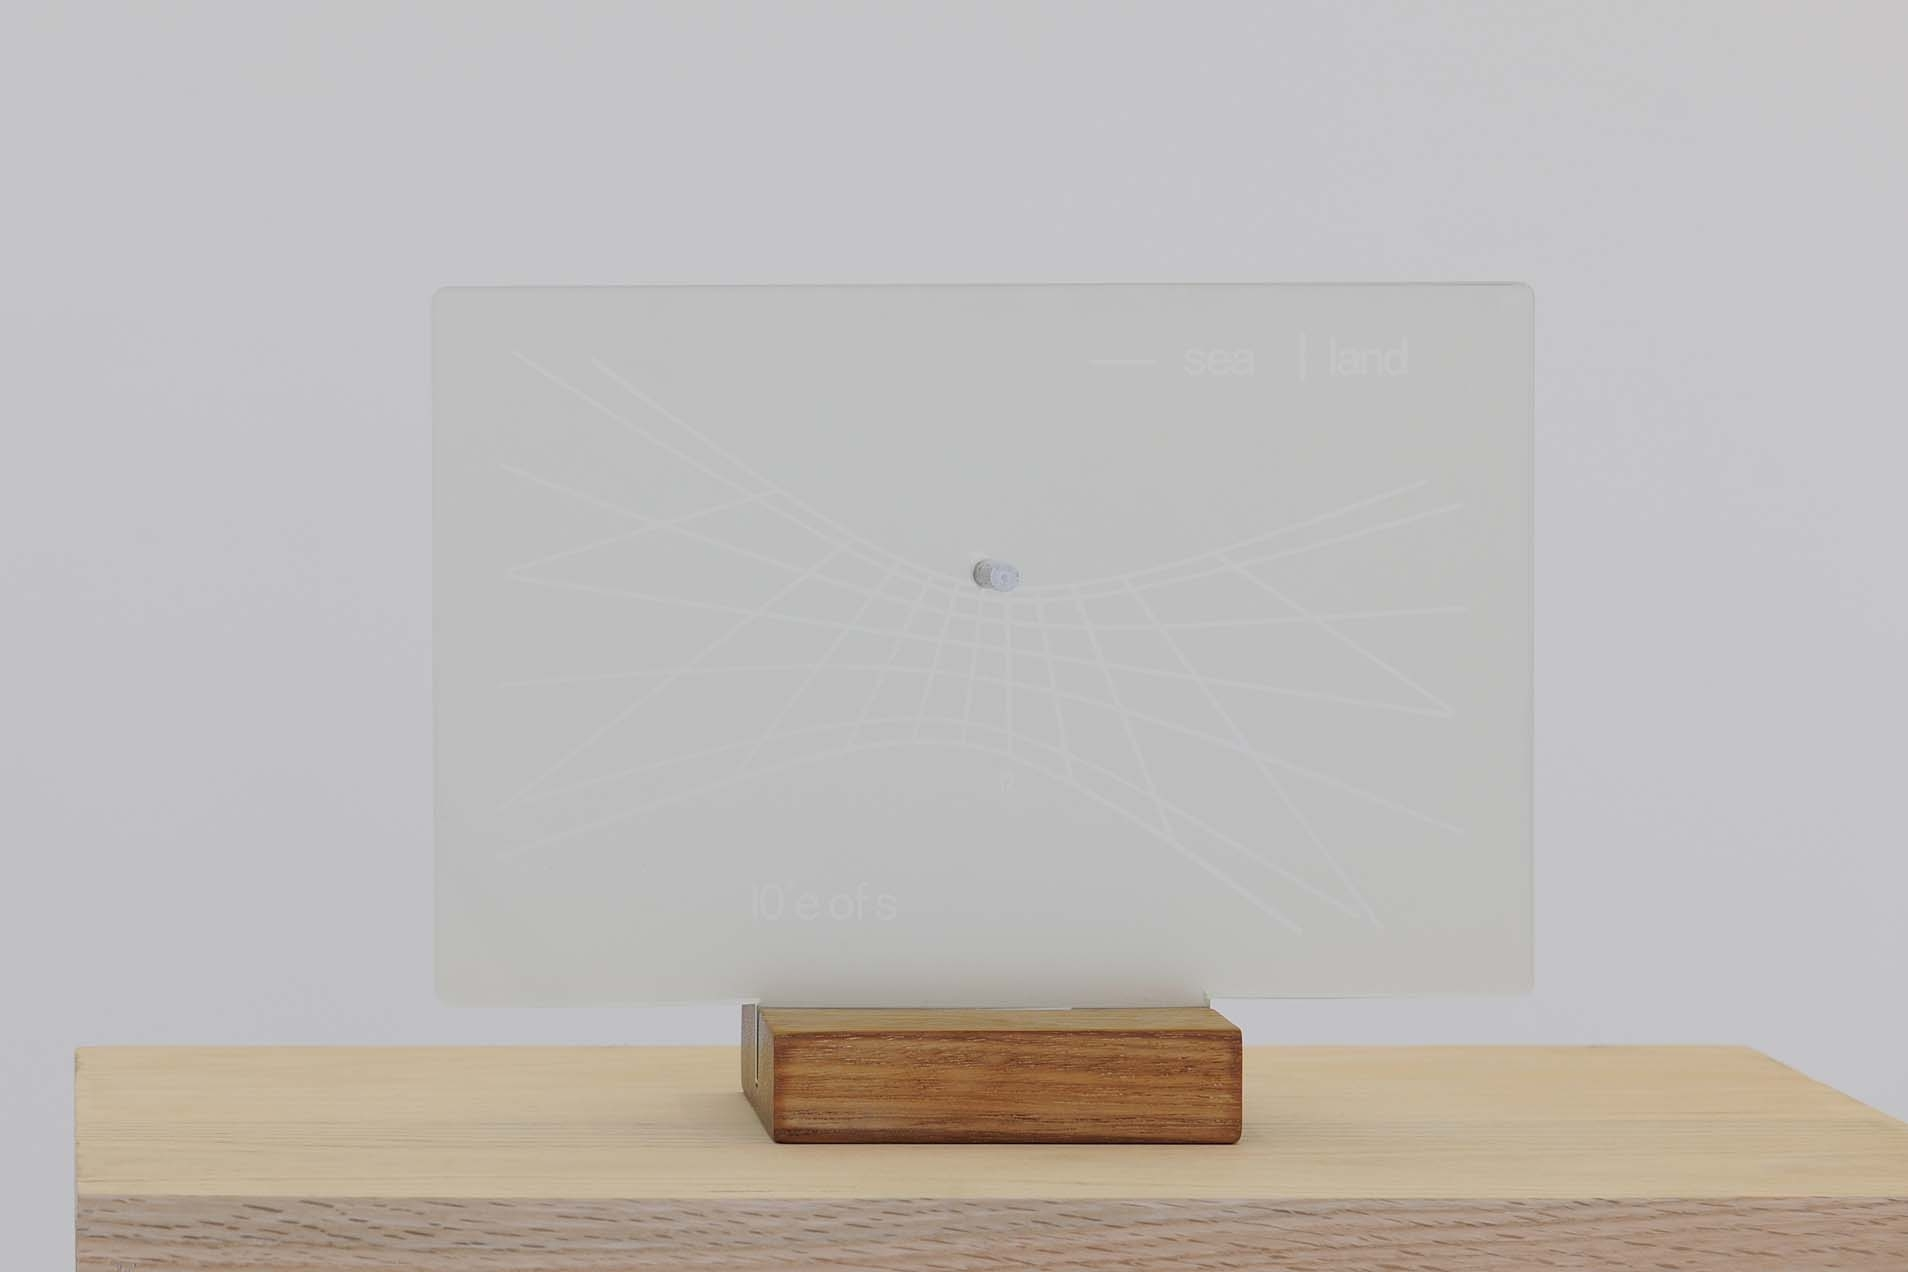 Sea/Land, 1970 with Michael Harvey and Joanna Soroka, Engraved glass, wooden stand, 30.5 x 23 x 10 cm, stand 12.5 x 10 cm, Small edition